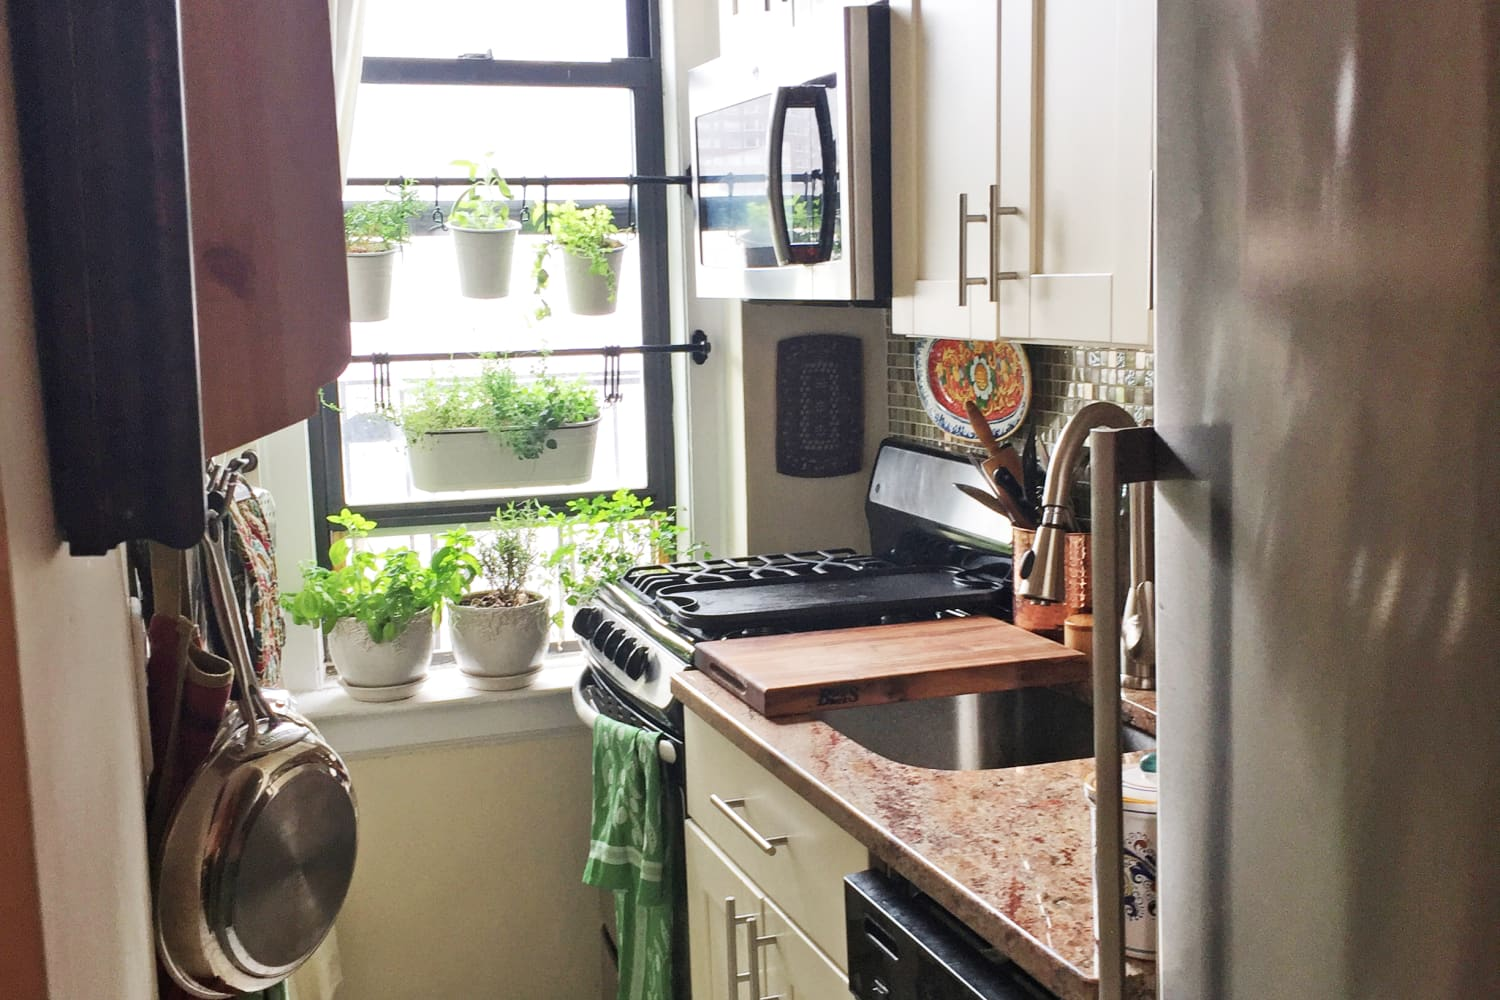 This 320-Square-Foot NYC Studio Is Stuffed With Smart and Organized Storage Ideas